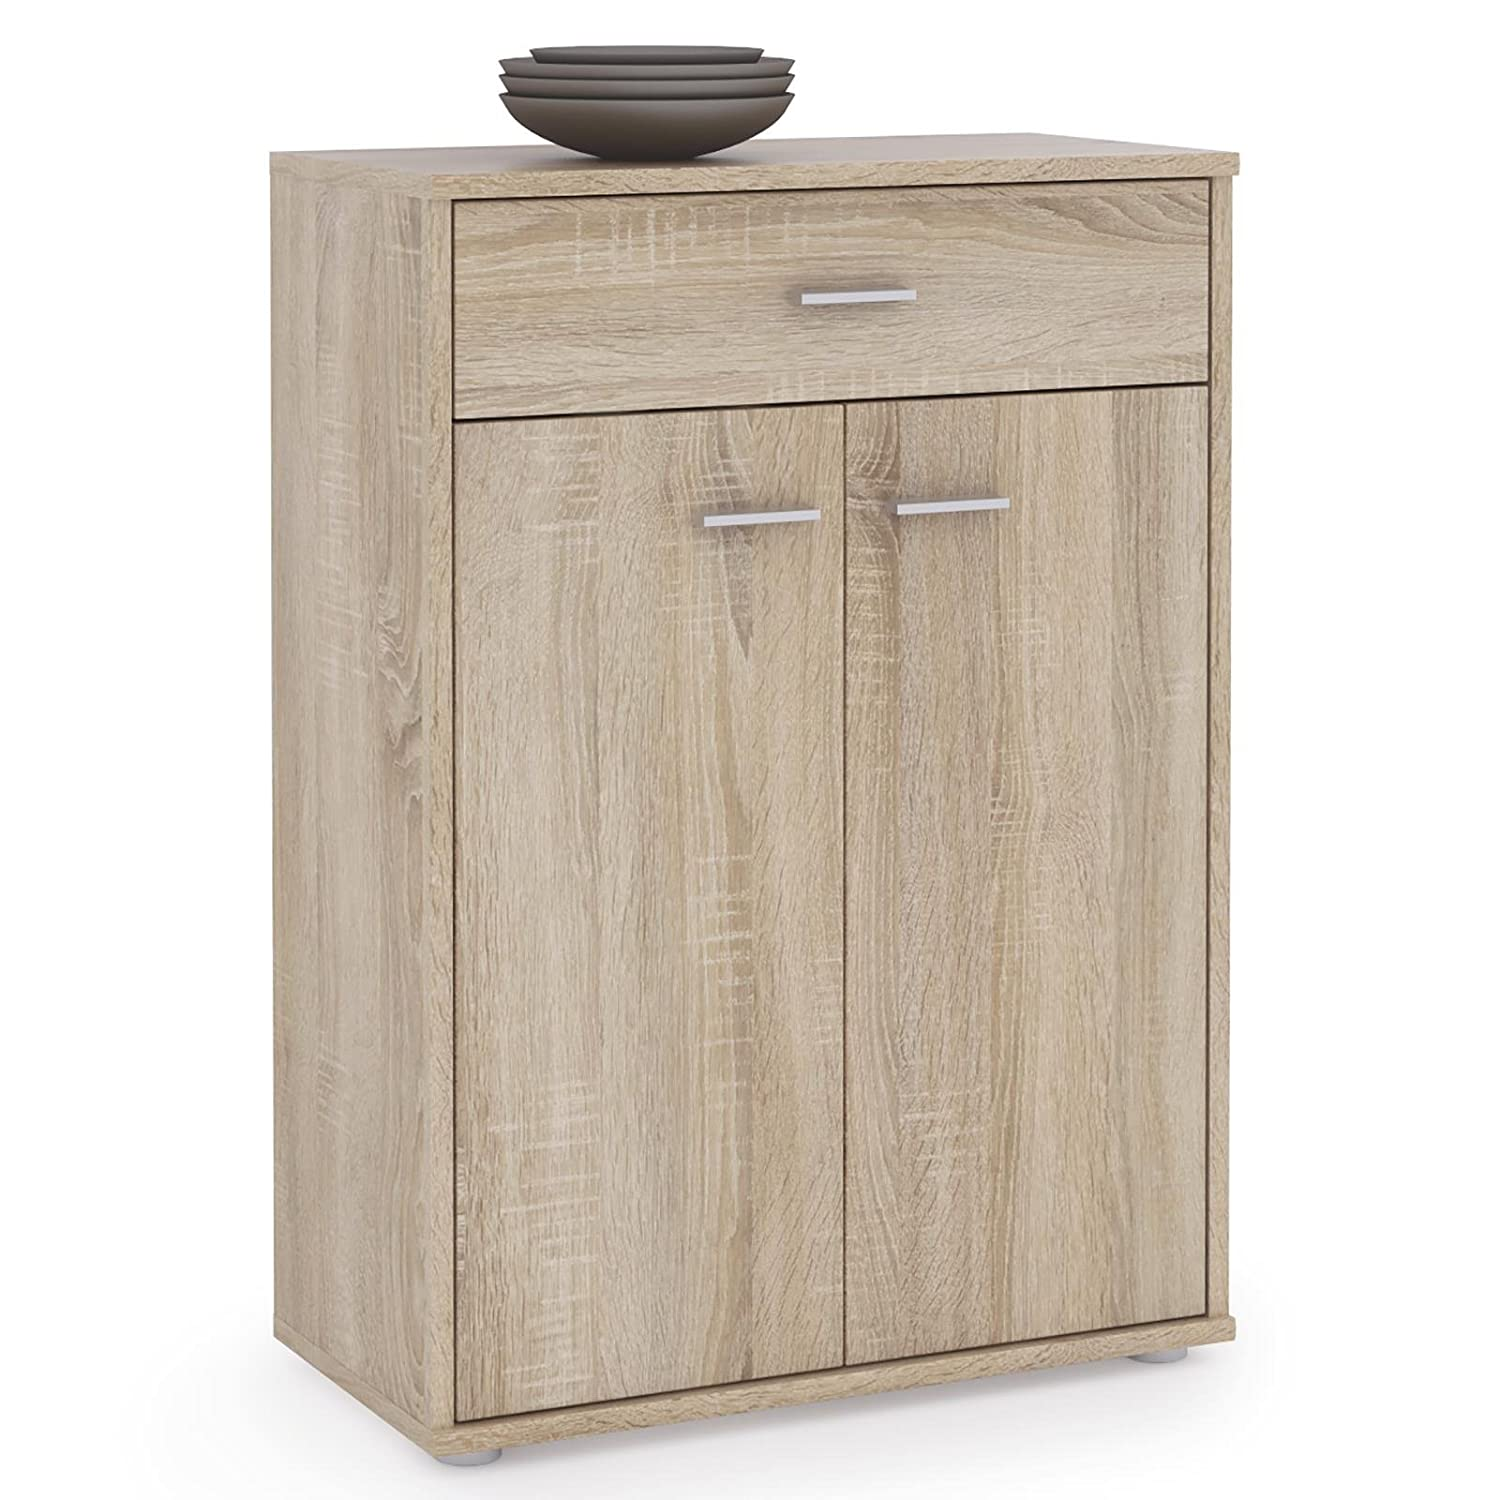 Kommode schmal hoch  Kommoden & Sideboards | Amazon.de